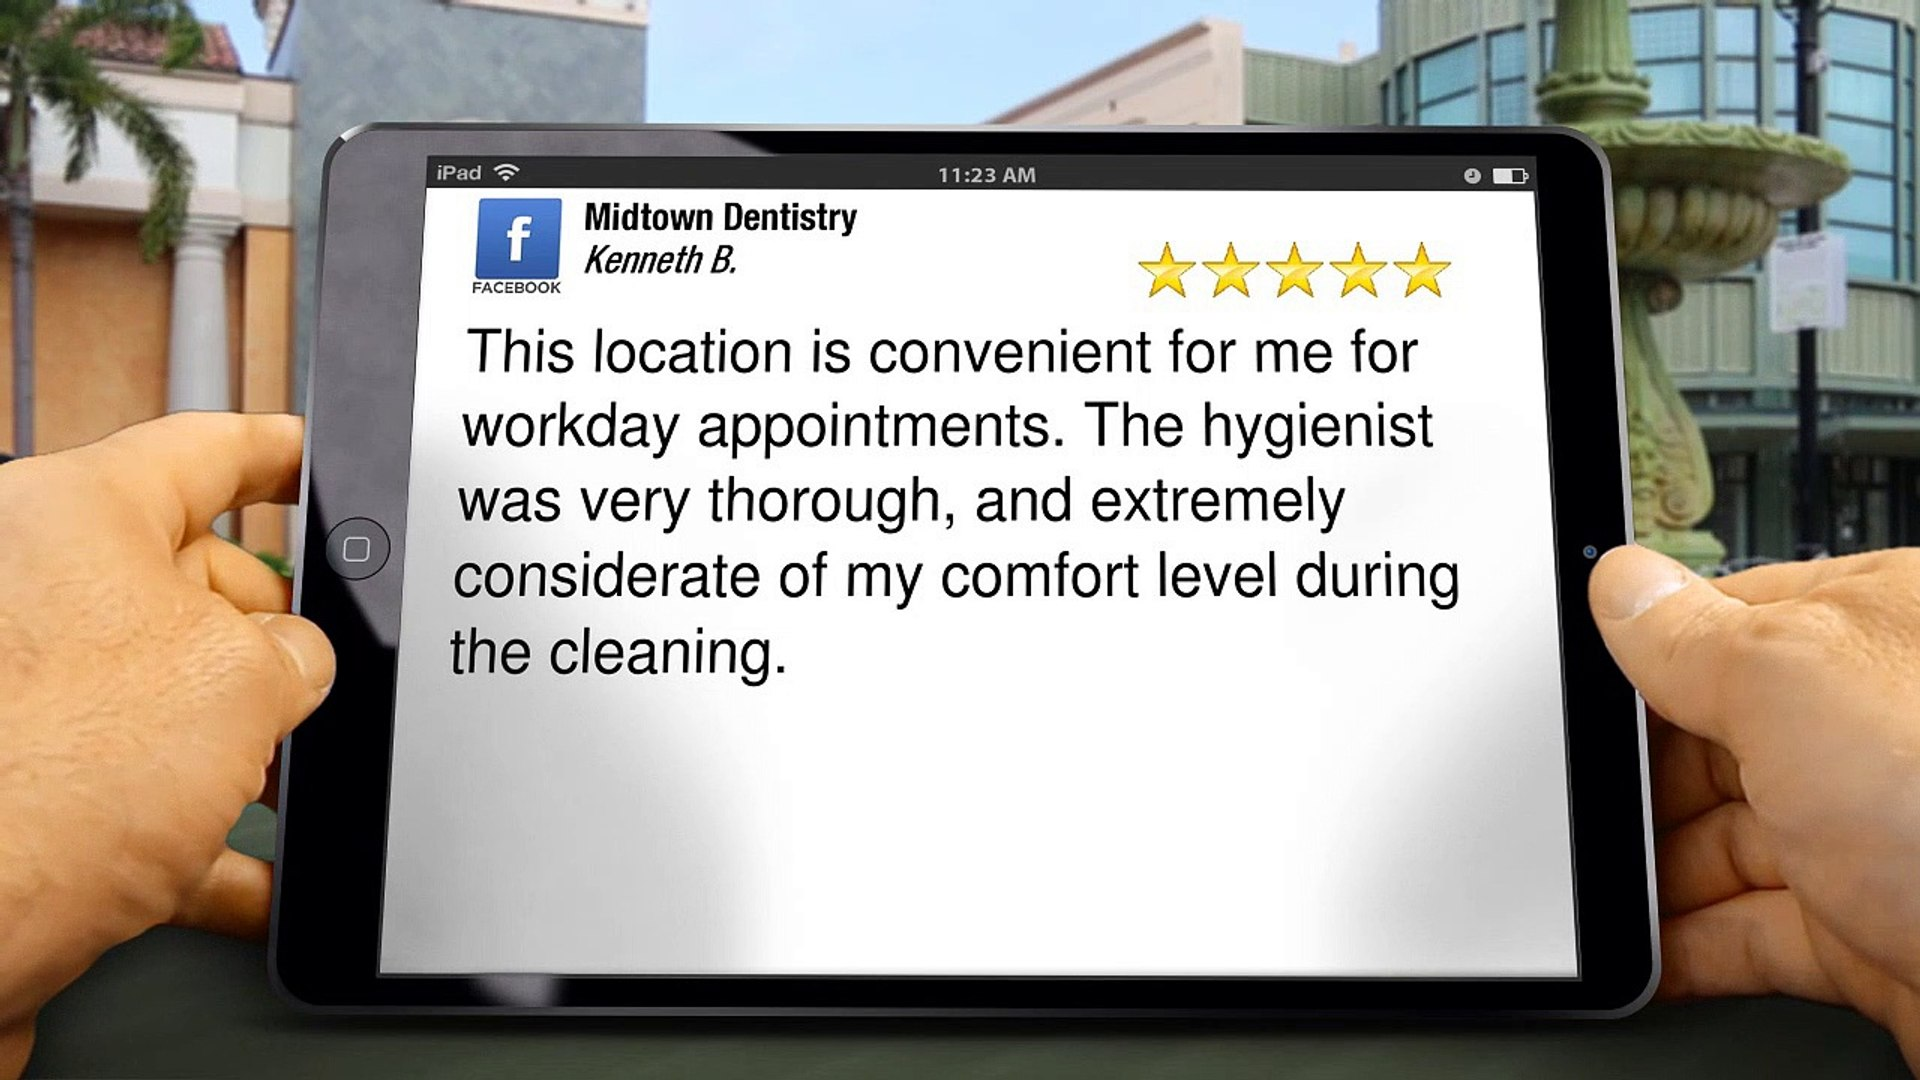 Midtown Dentistry HoustonGreat5 Star Review by Kenneth Baker